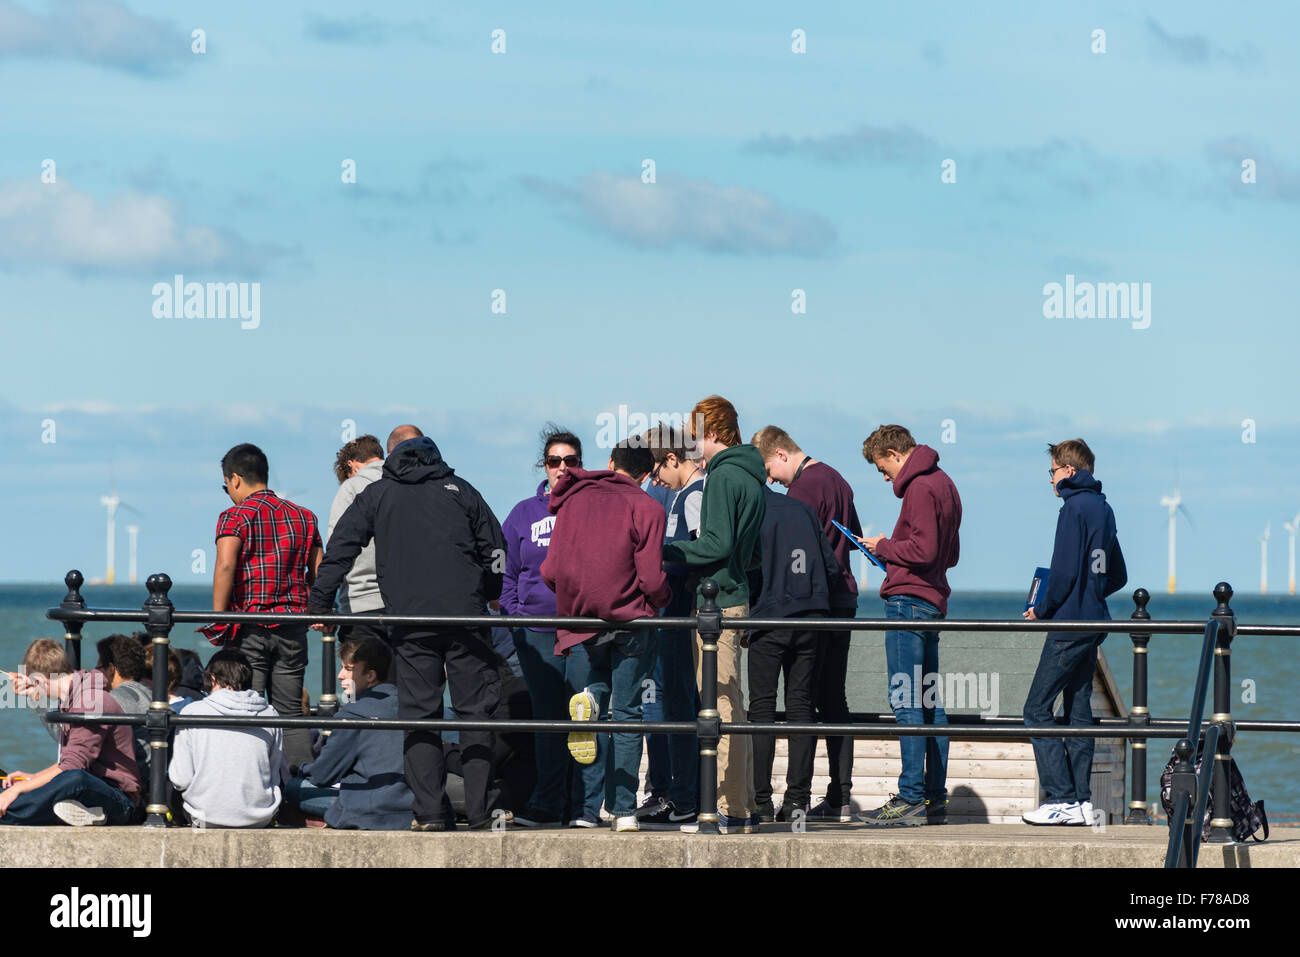 Student group on foreshore study trip, Herne Bay, Kent, England, United Kingdom - Stock Image